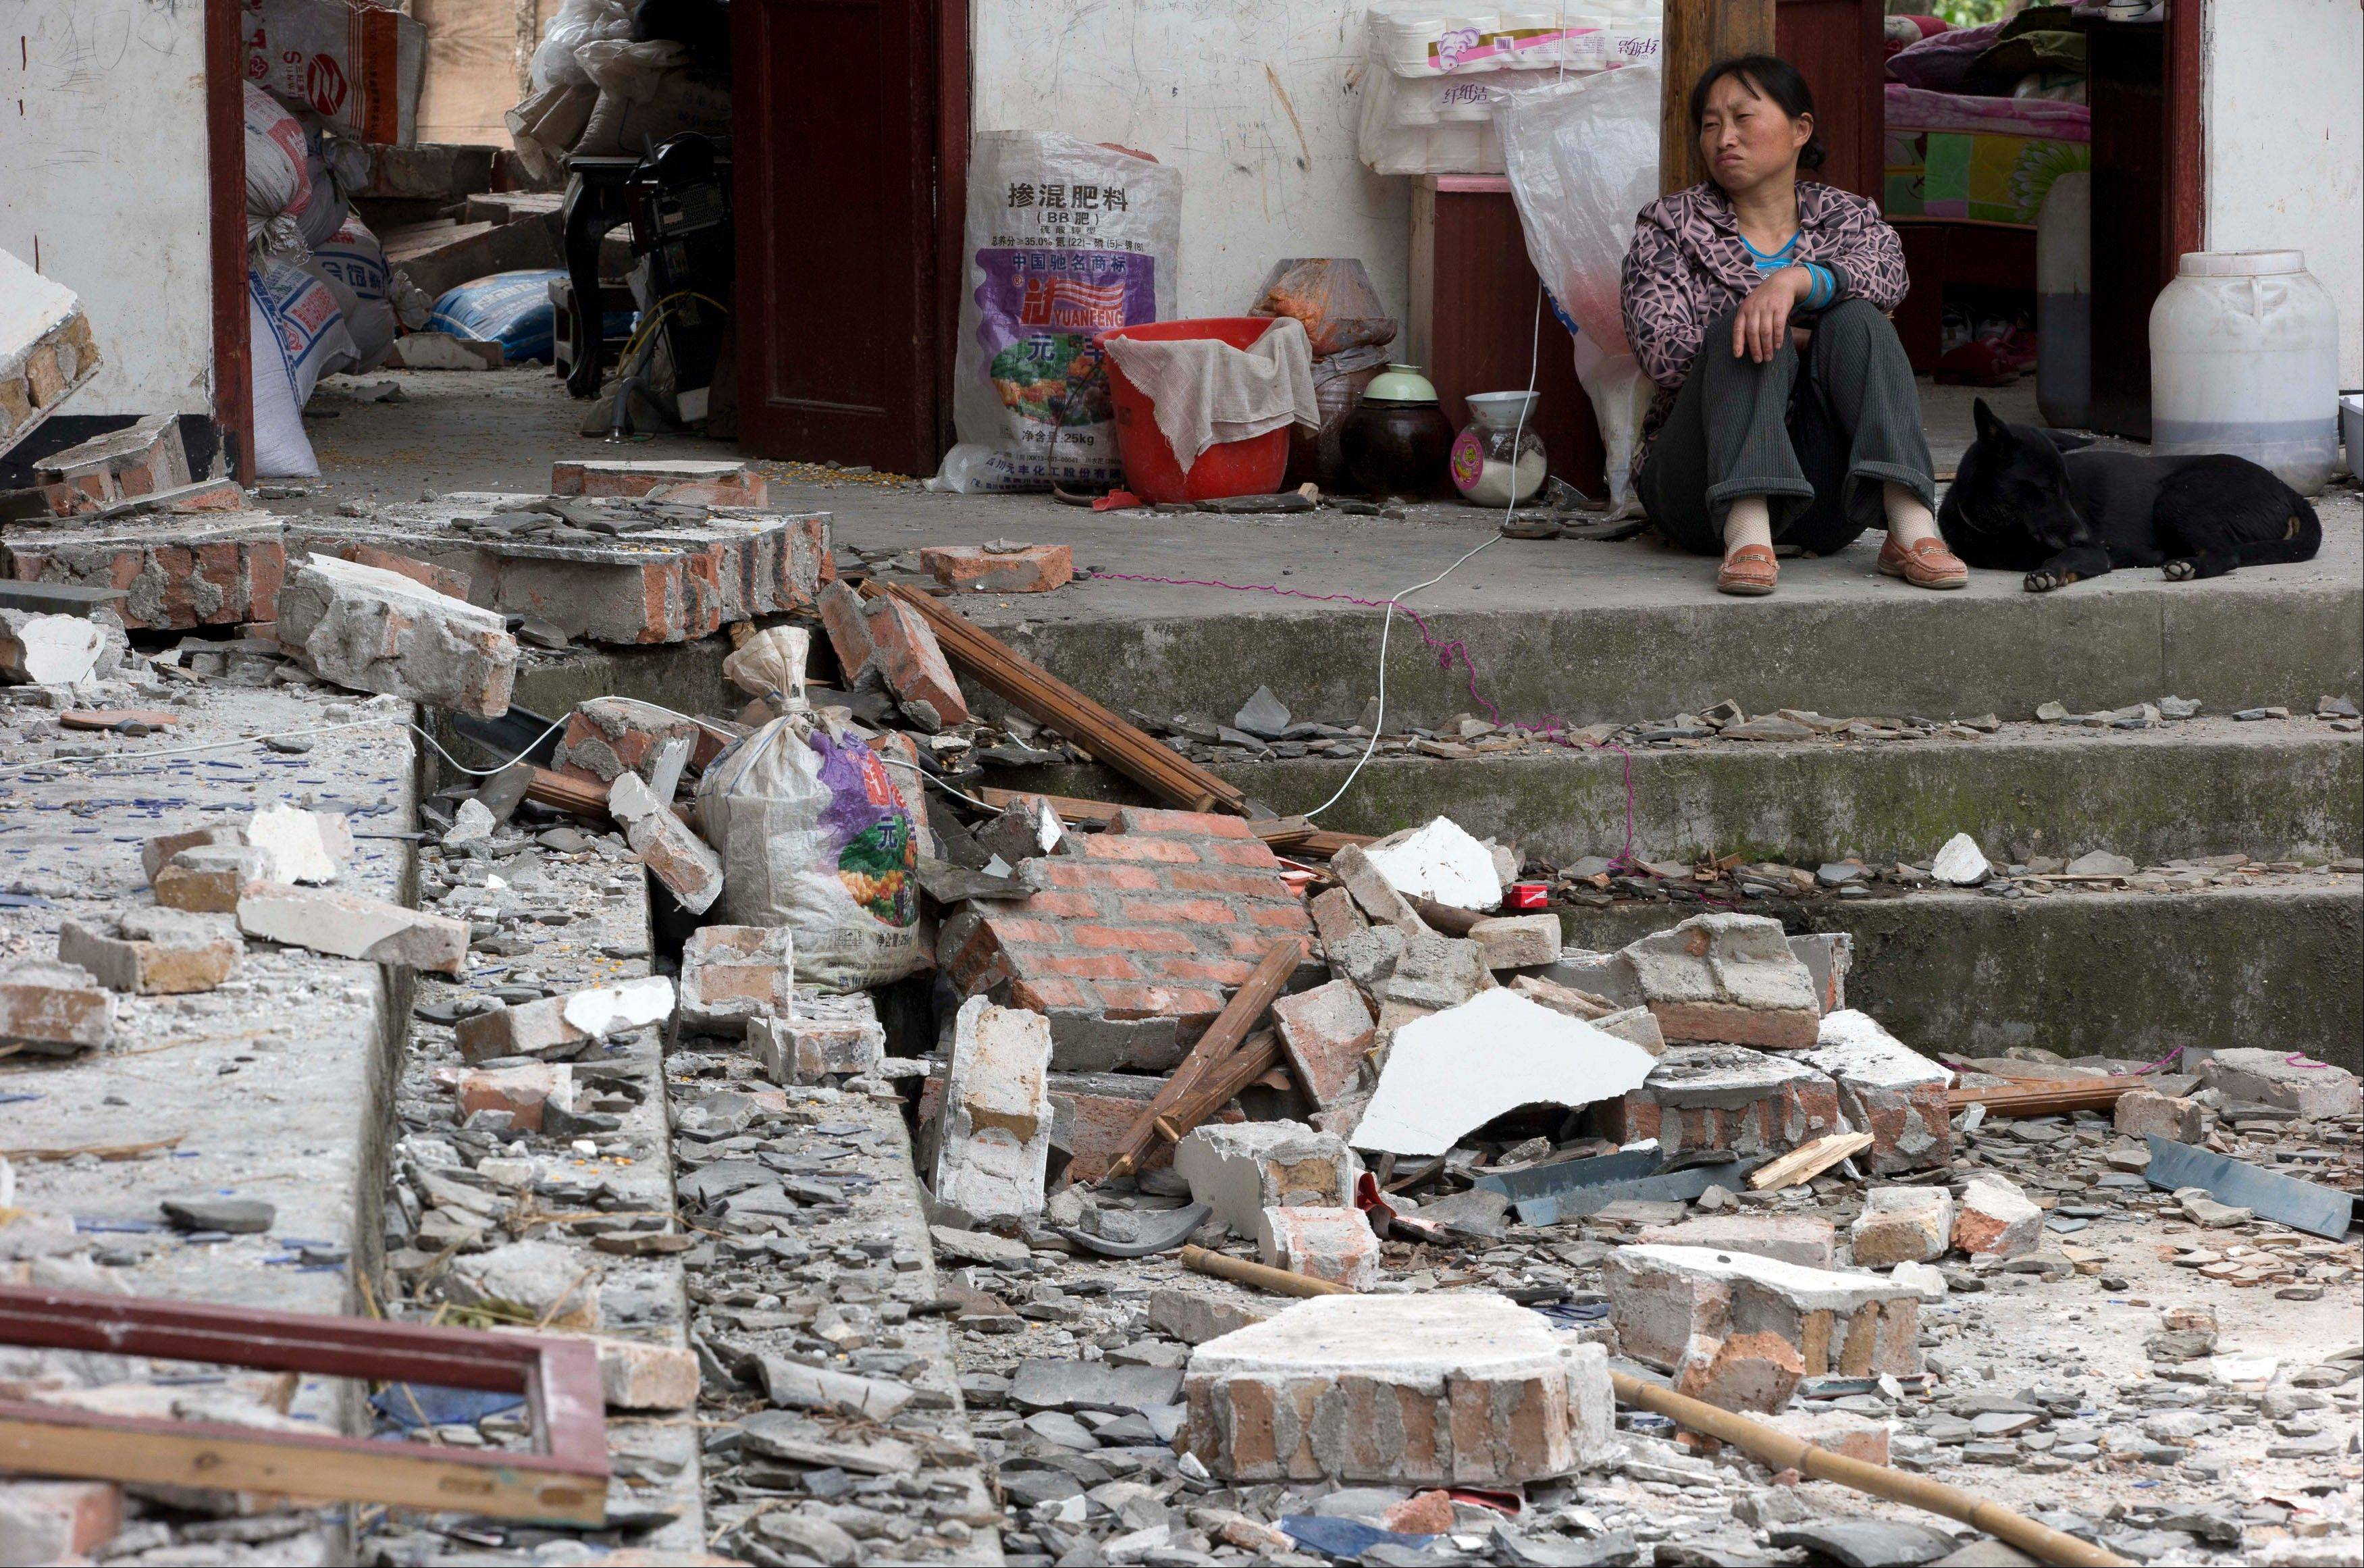 A woman looks over at her destroyed house in Gucheng village in Longmen county of southwestern China�s Sichuan province, Sunday, April 21, 2013. Rescuers and relief teams struggled to rush supplies into the rural hills of China�s Sichuan province Sunday after an earthquake prompted frightened survivors to spend a night in cars, tents and makeshift shelters.